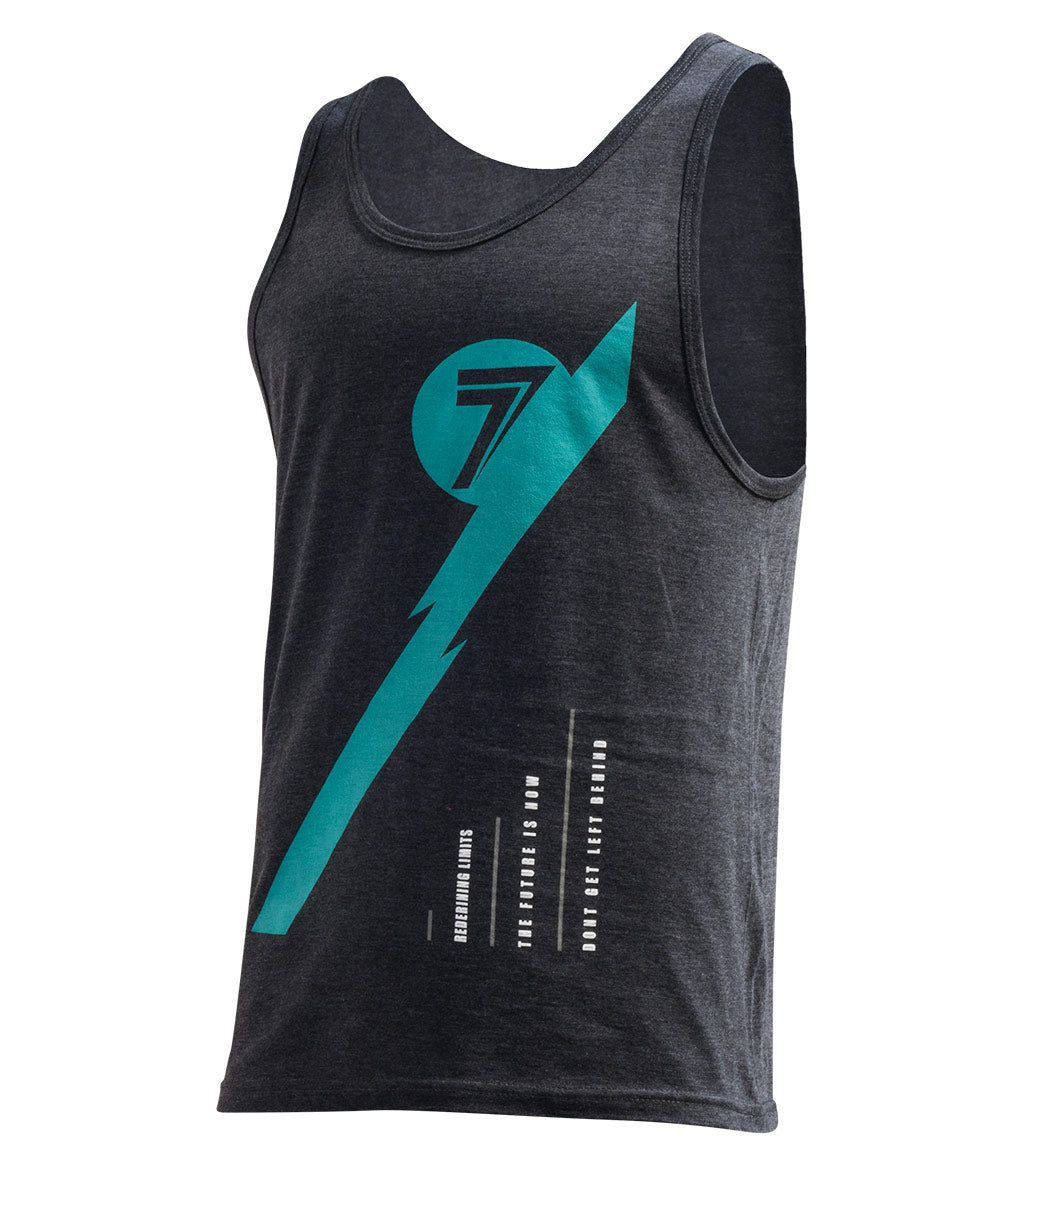 Fusion Tank - Charcoal Heather